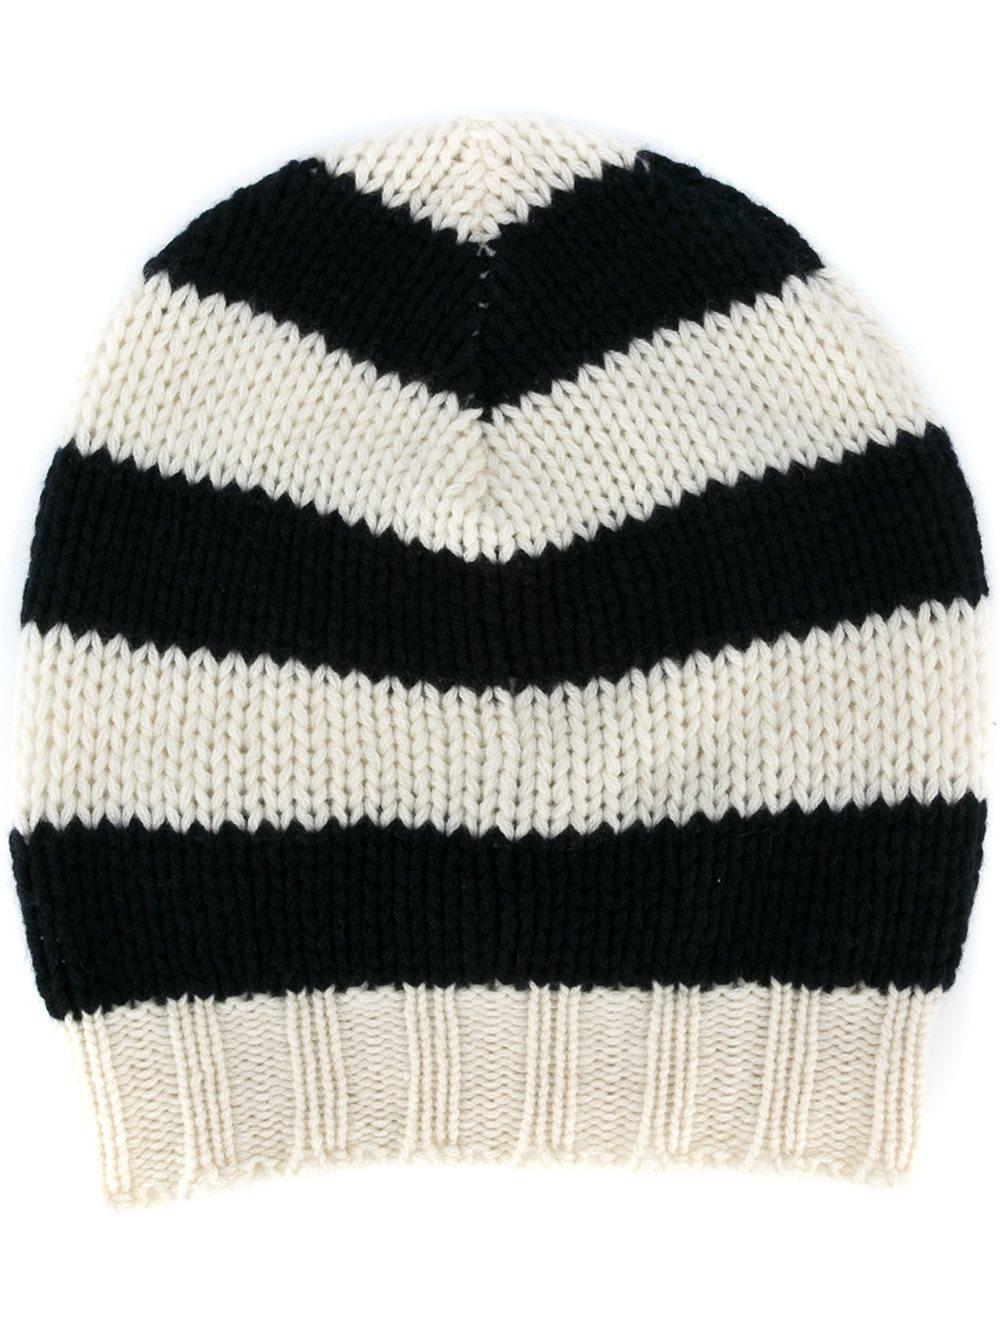 Ermanno scervino Striped Knit Beanie in Black Lyst